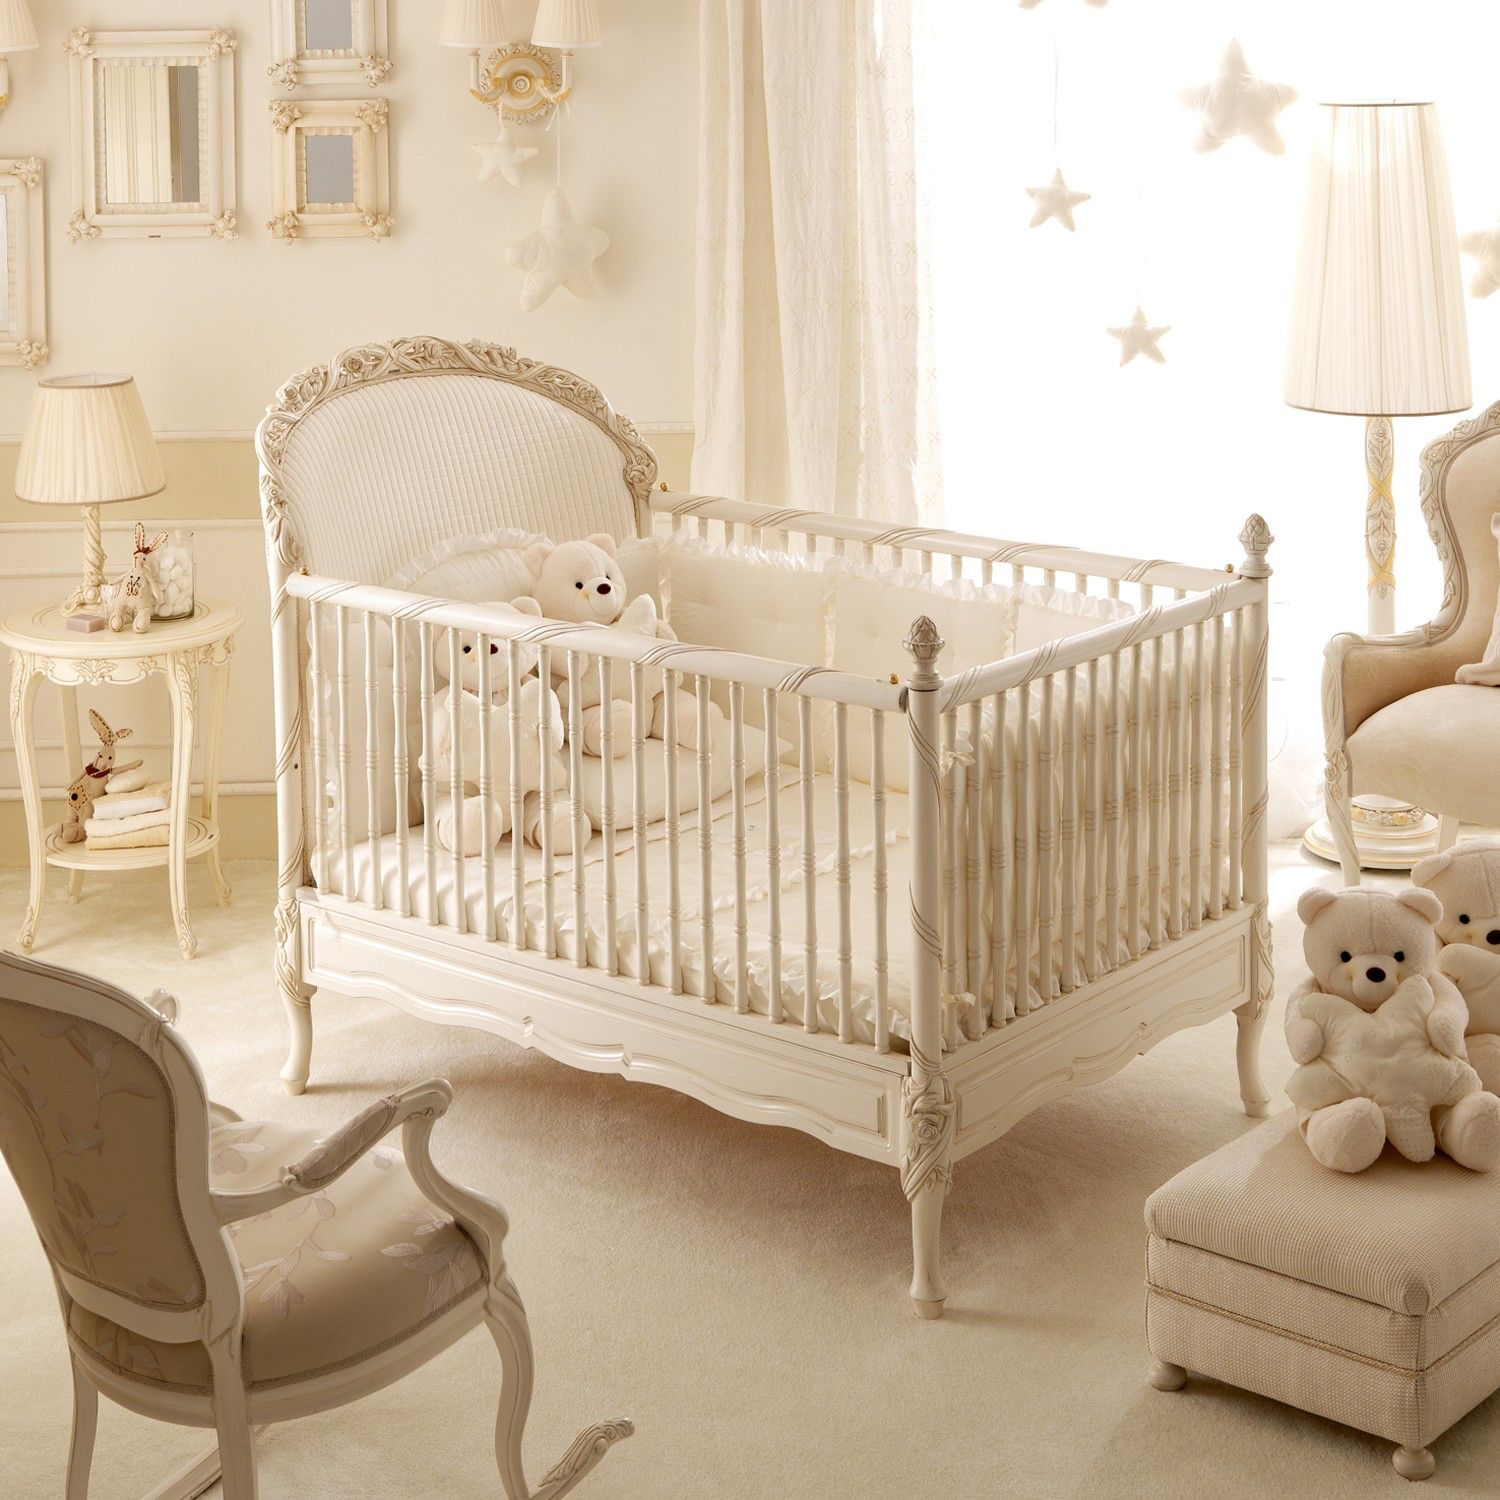 Are Expensive Cribs Worth The Money Project Nursery Luxury Baby Crib Baby Cribs Round Baby Cribs